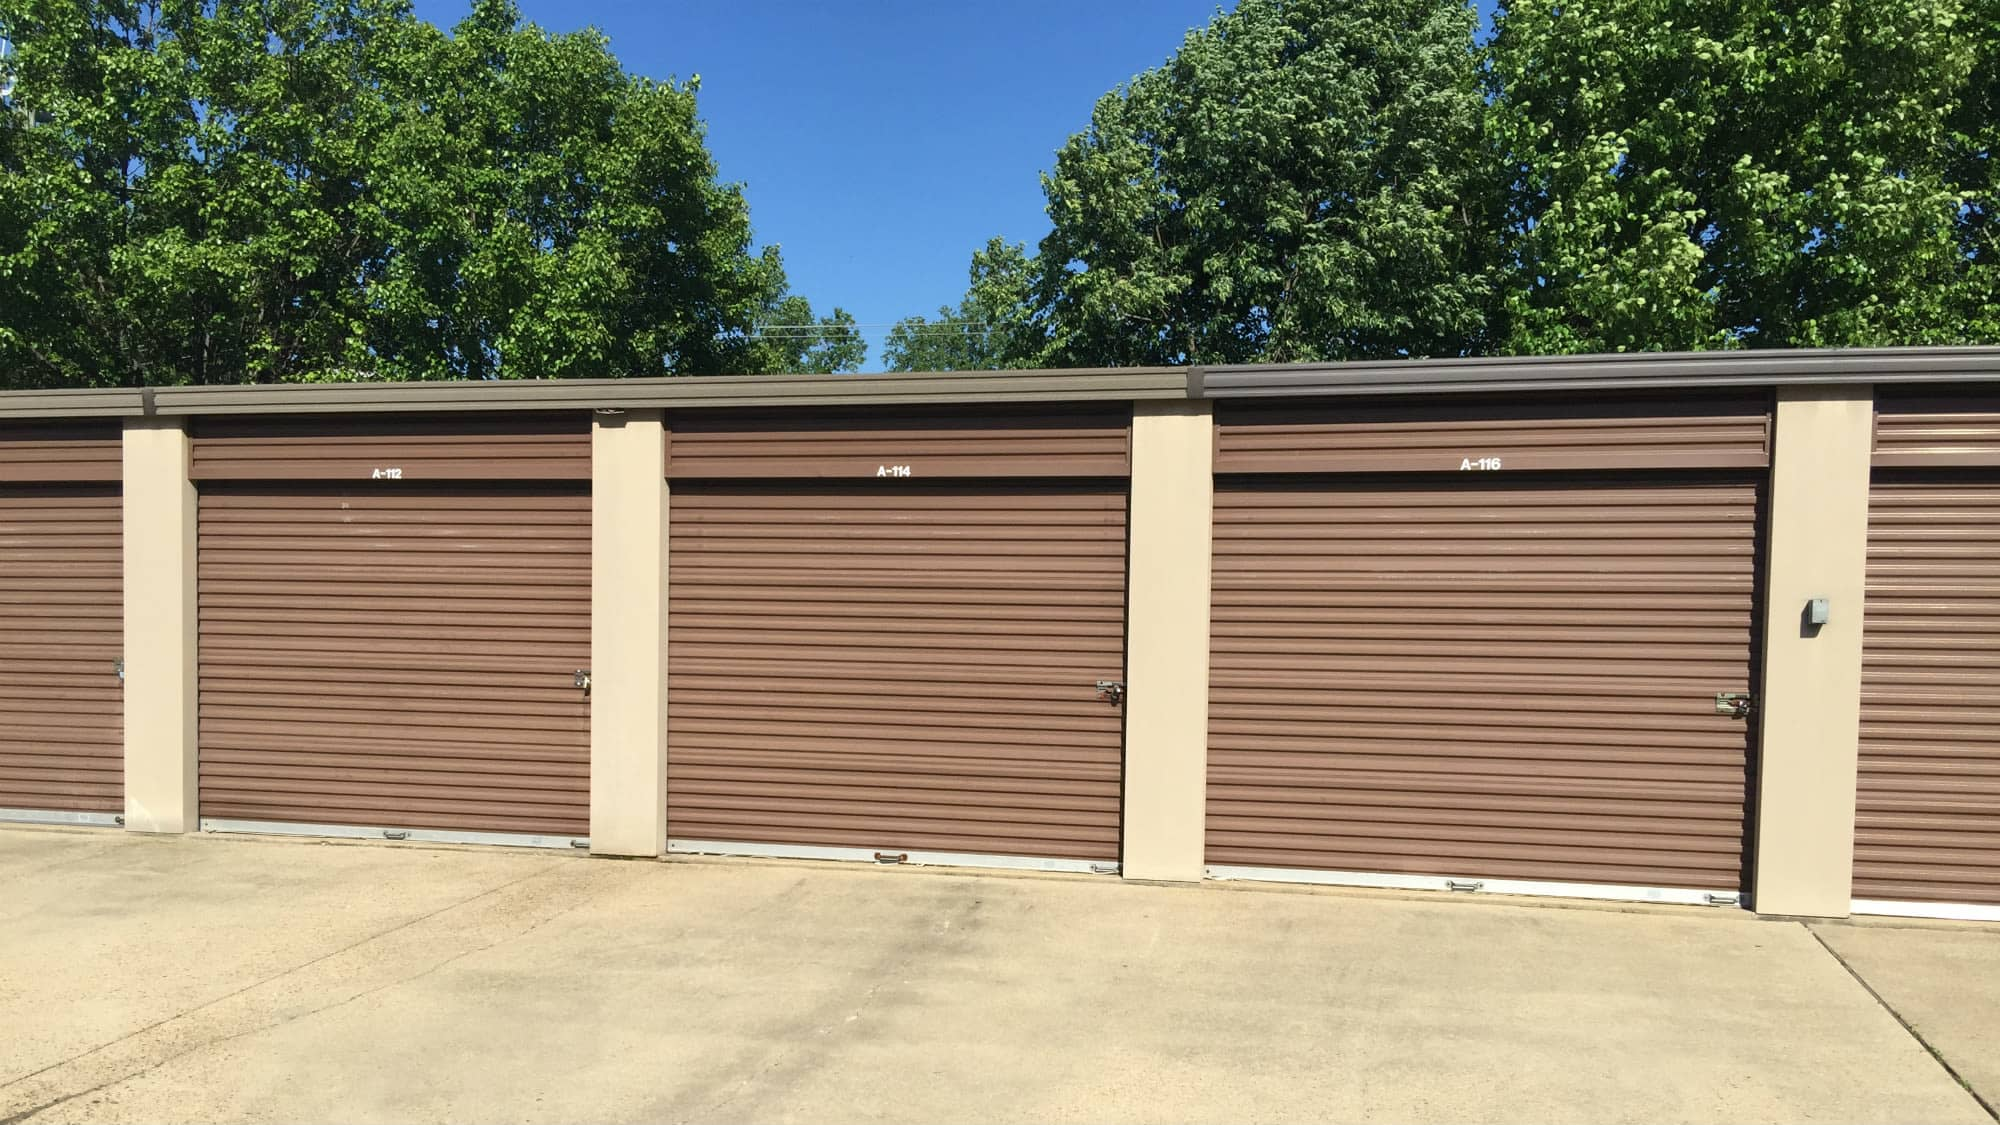 Roll Up Doors At Triangle Self Storage In Triangle, Virginia